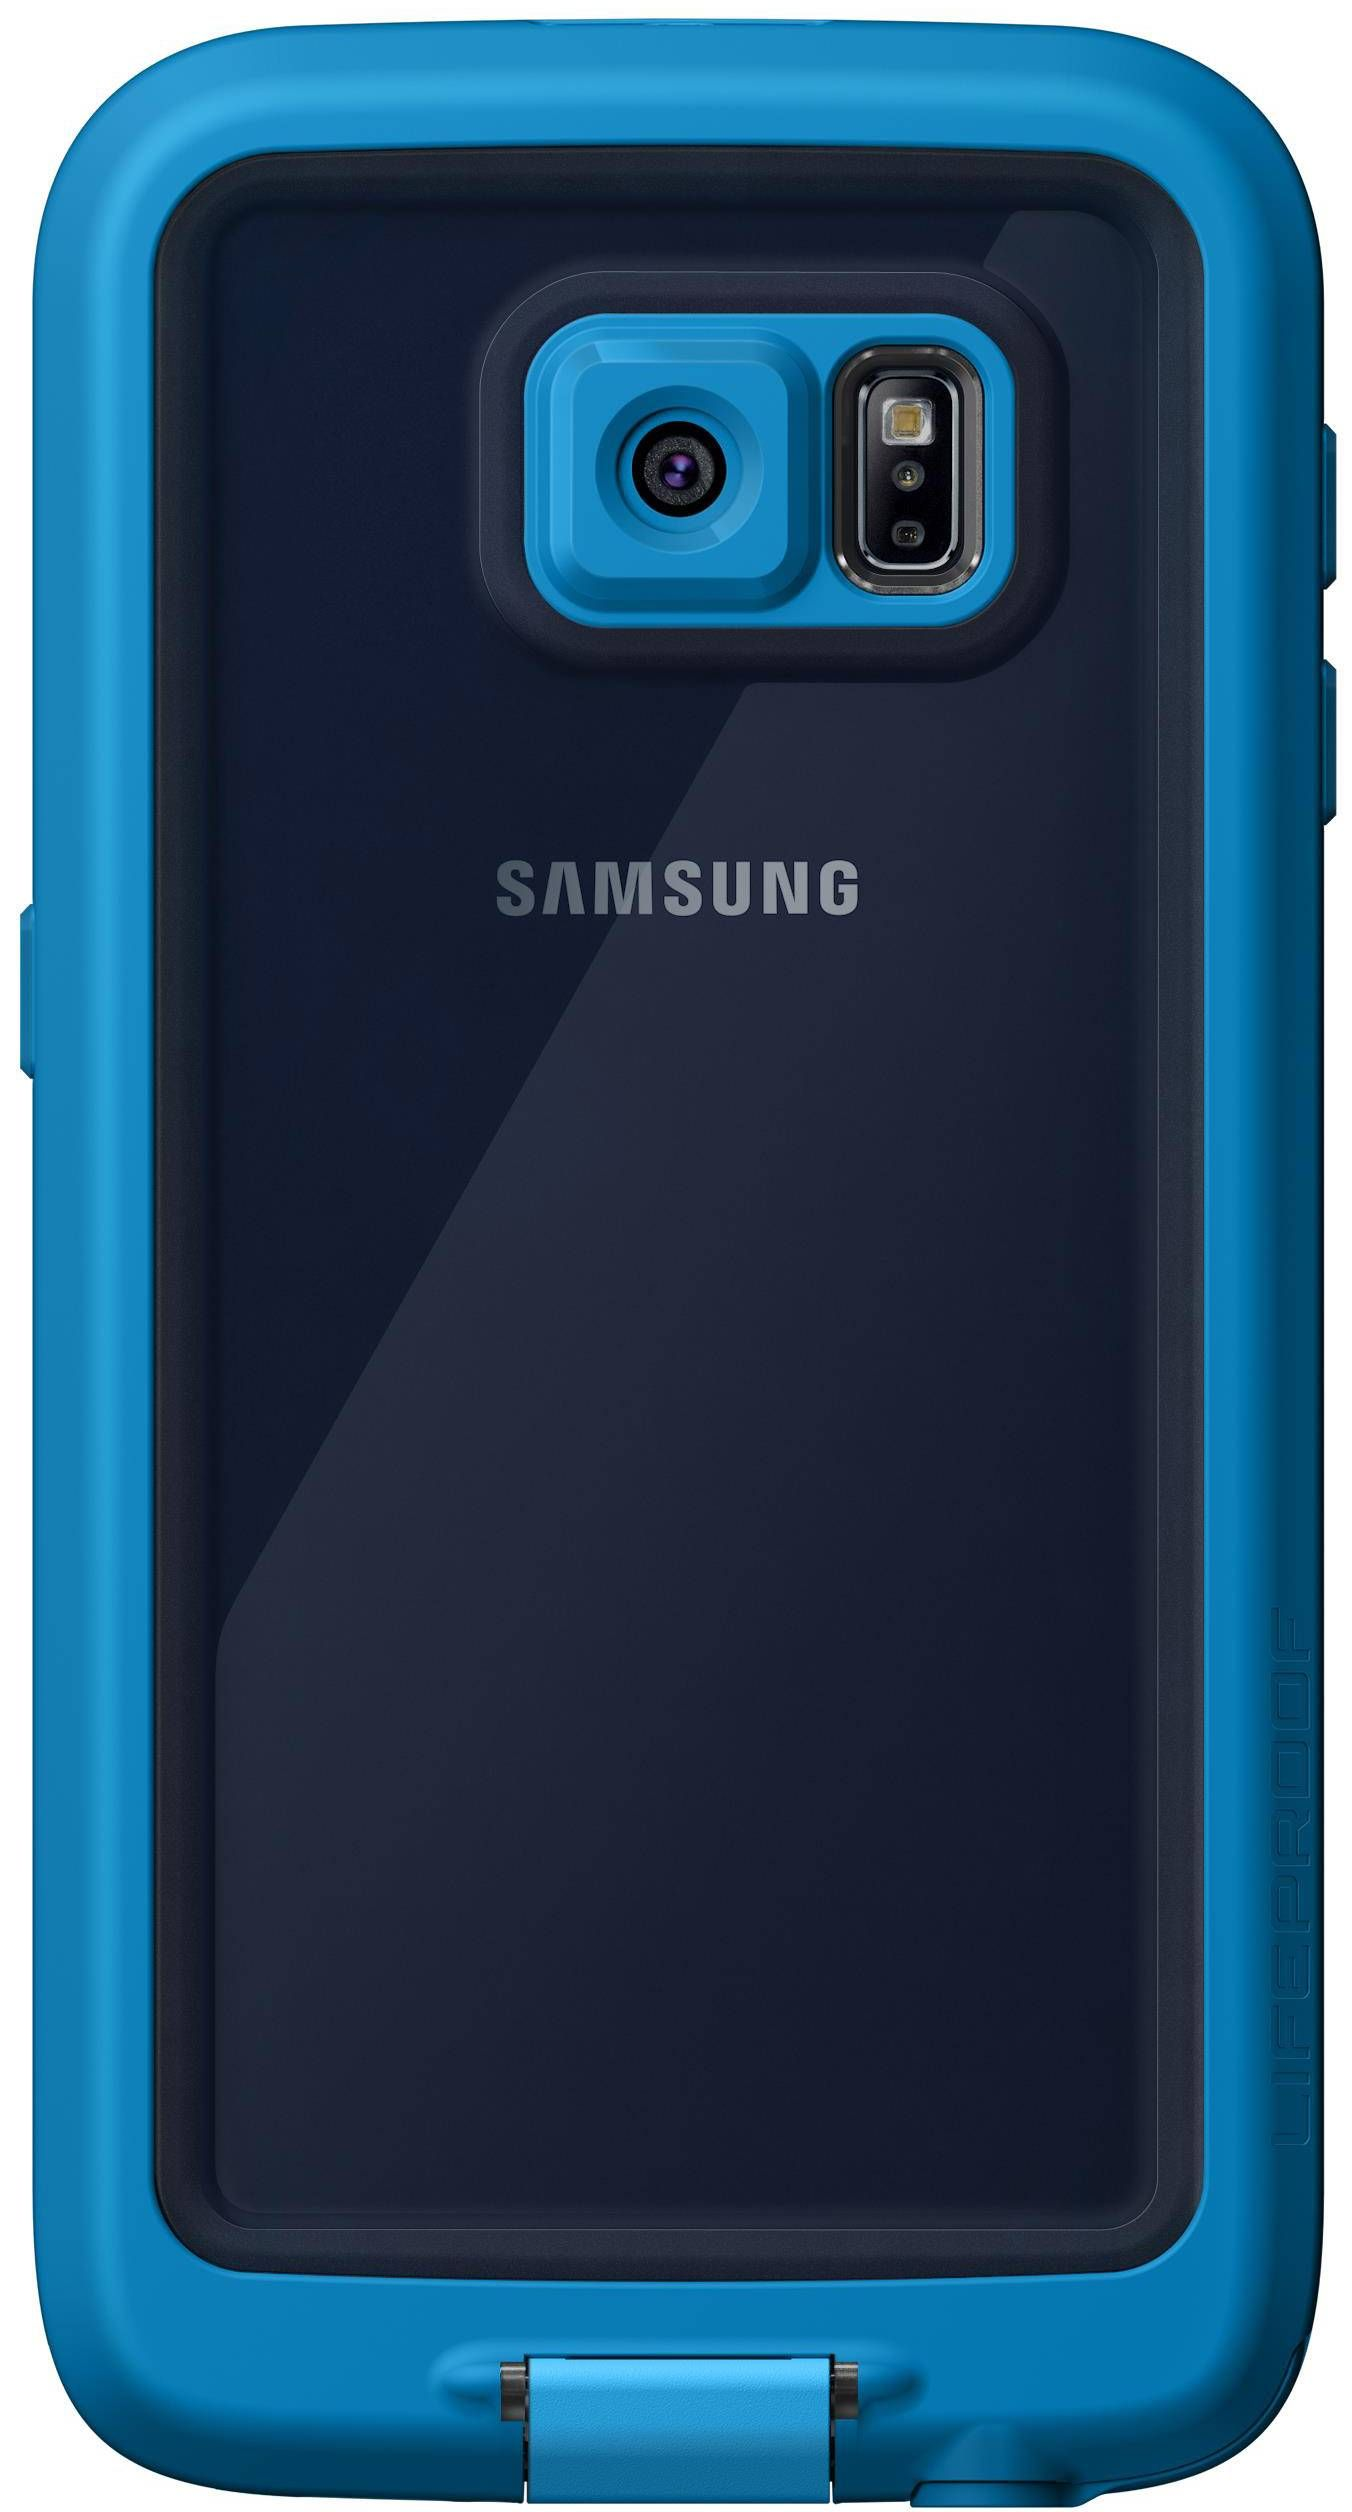 low priced bae46 14d38 LifeProof Fre Case suits Samsung Galaxy S6 - Blue - LifeProof ...